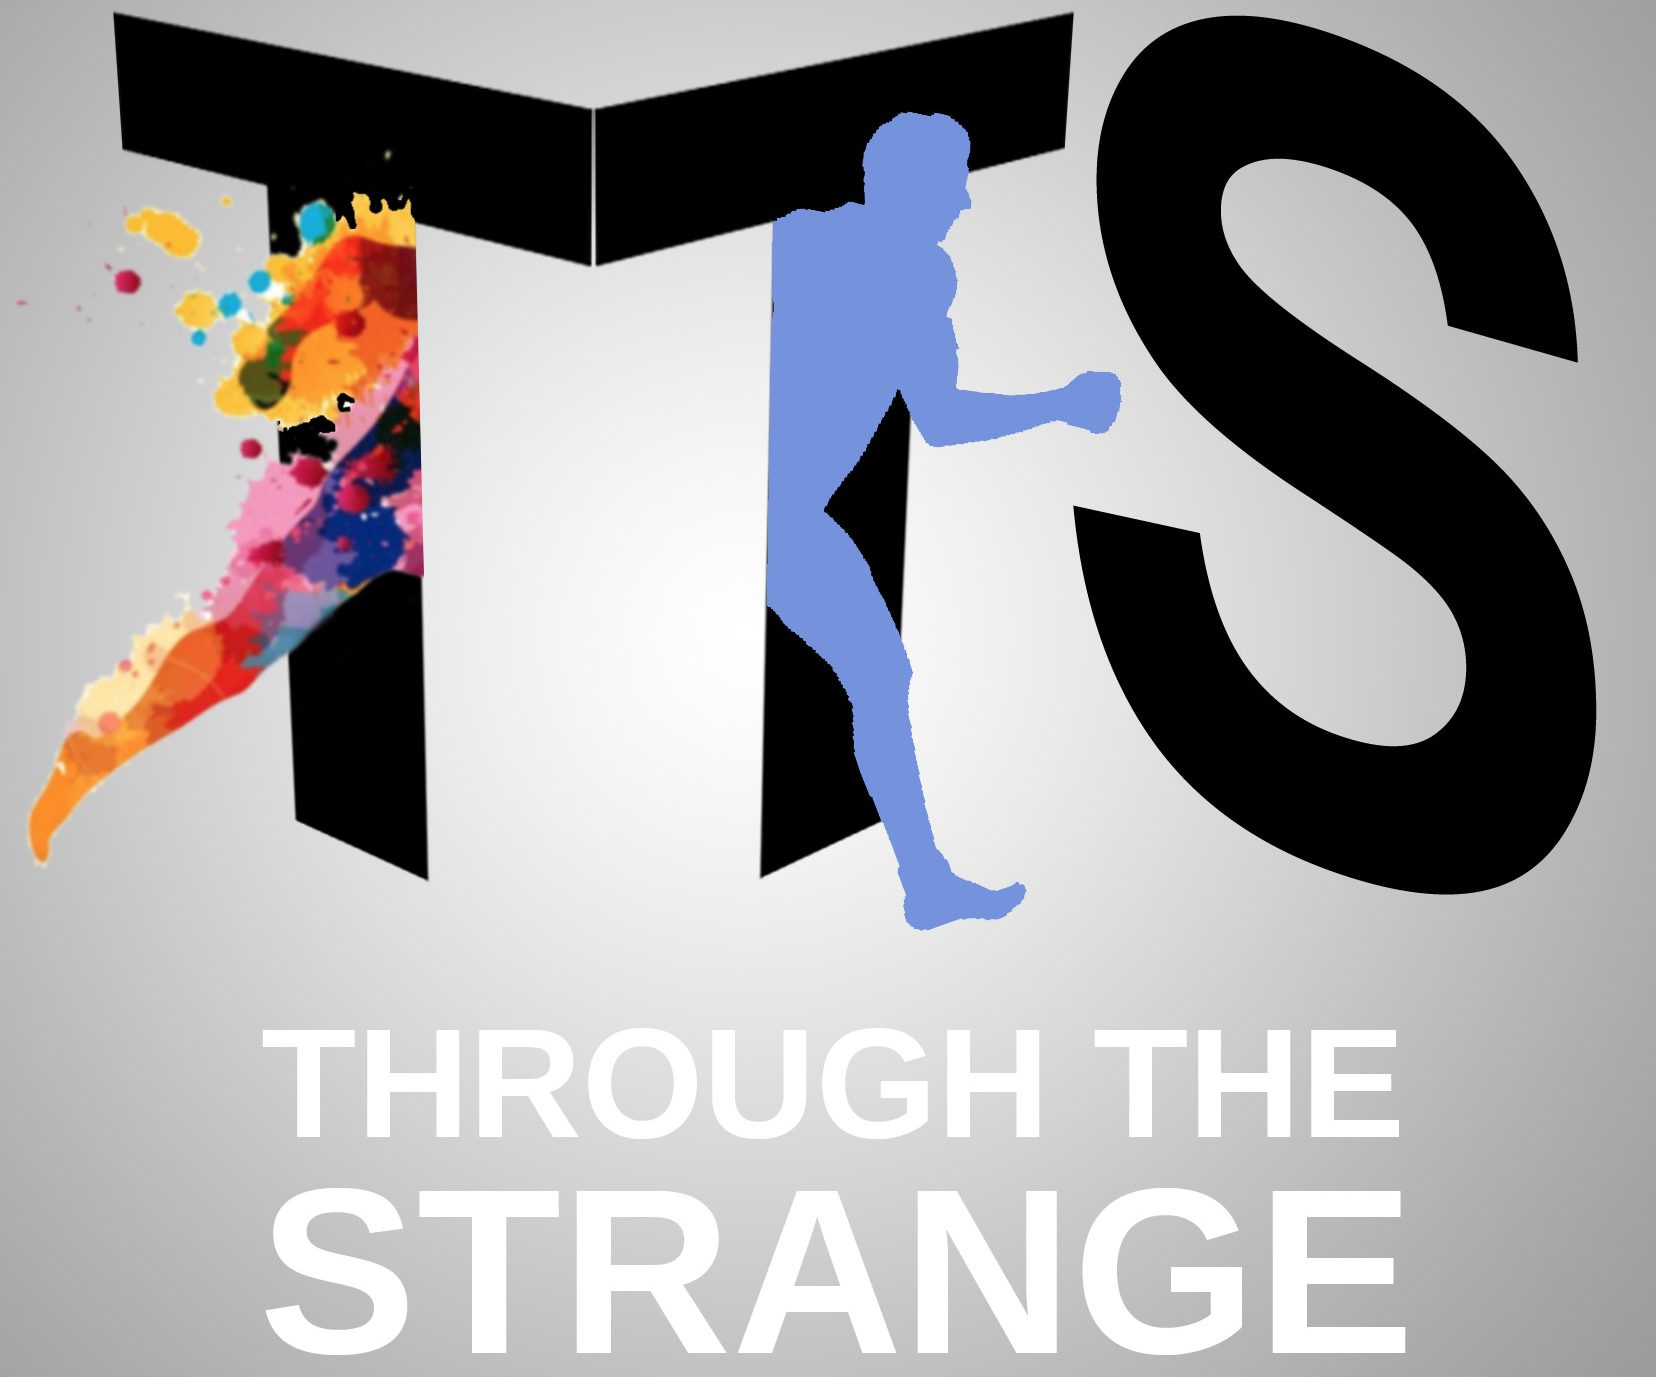 Through the Strange